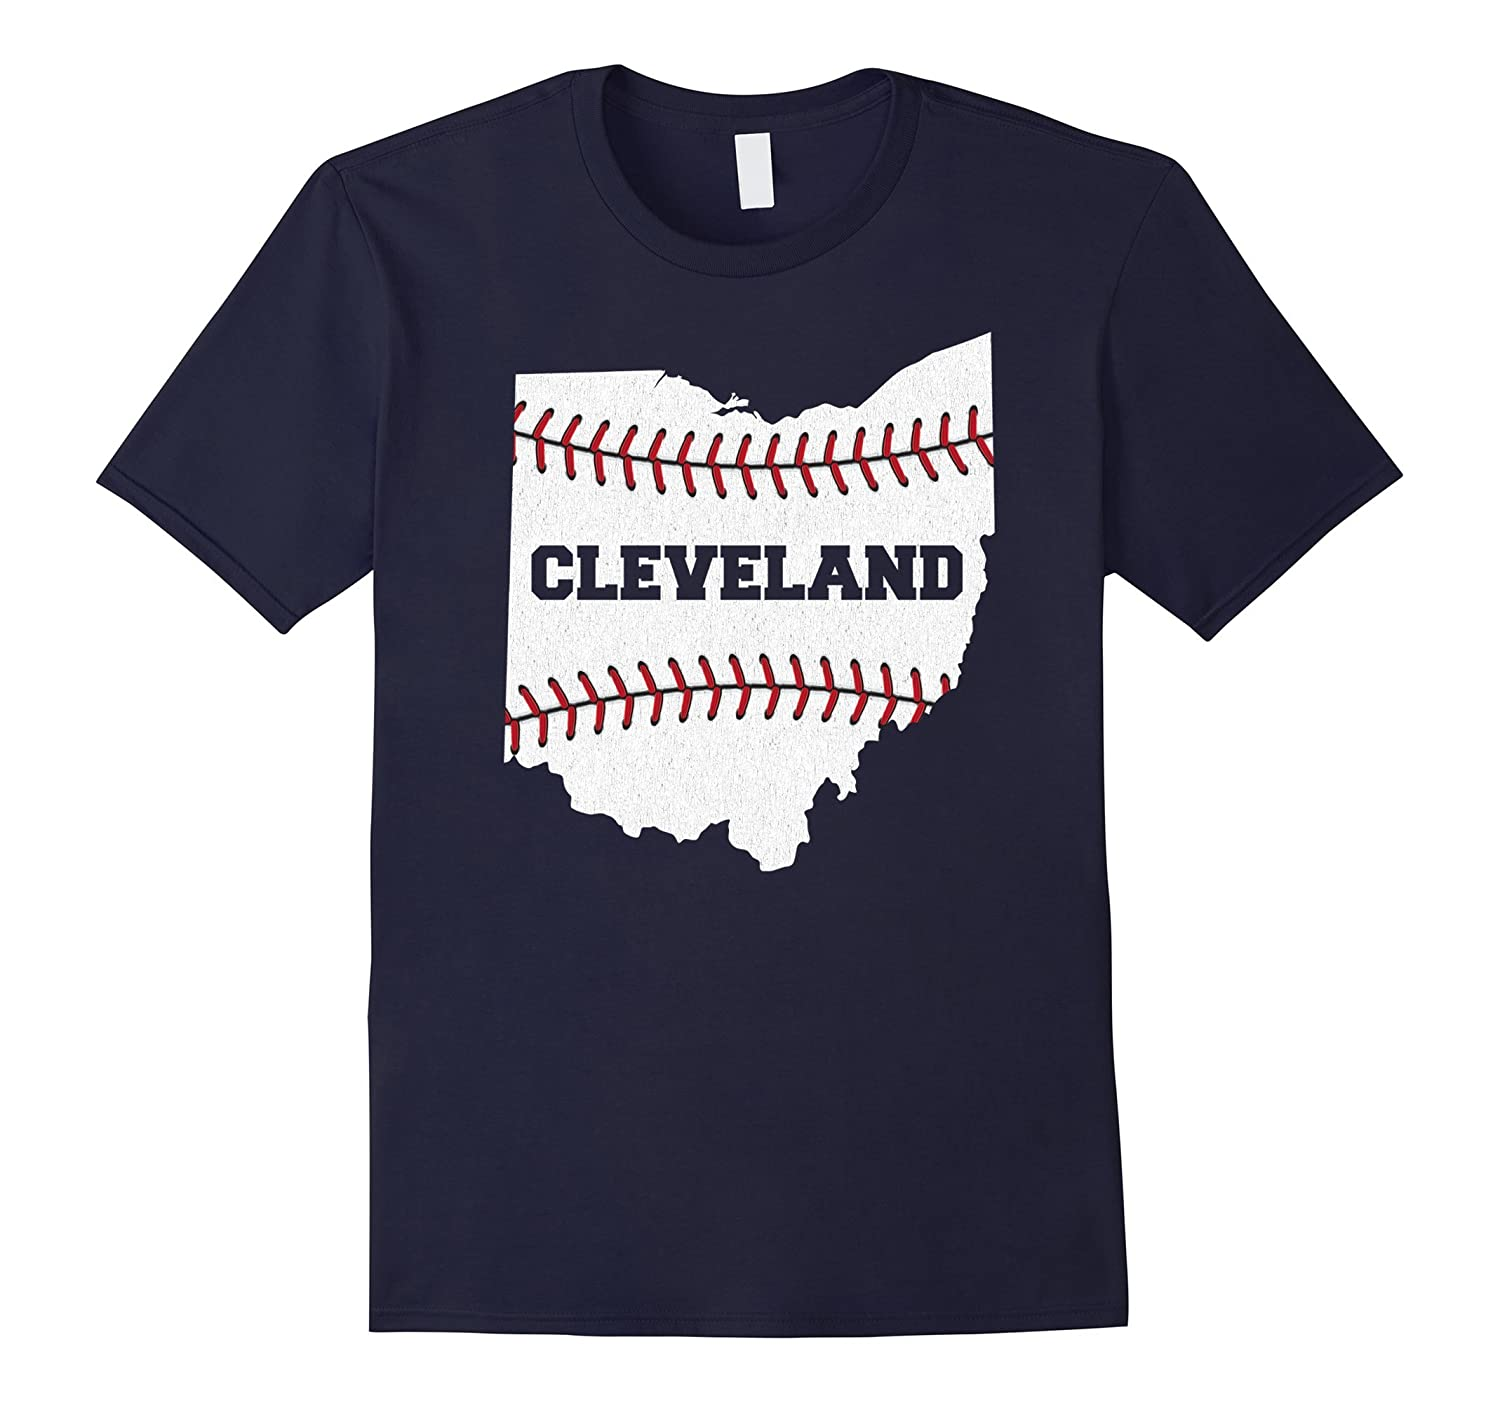 216 Cleveland Ohio Baseball T Shirt Men Women Boys Girls-FL